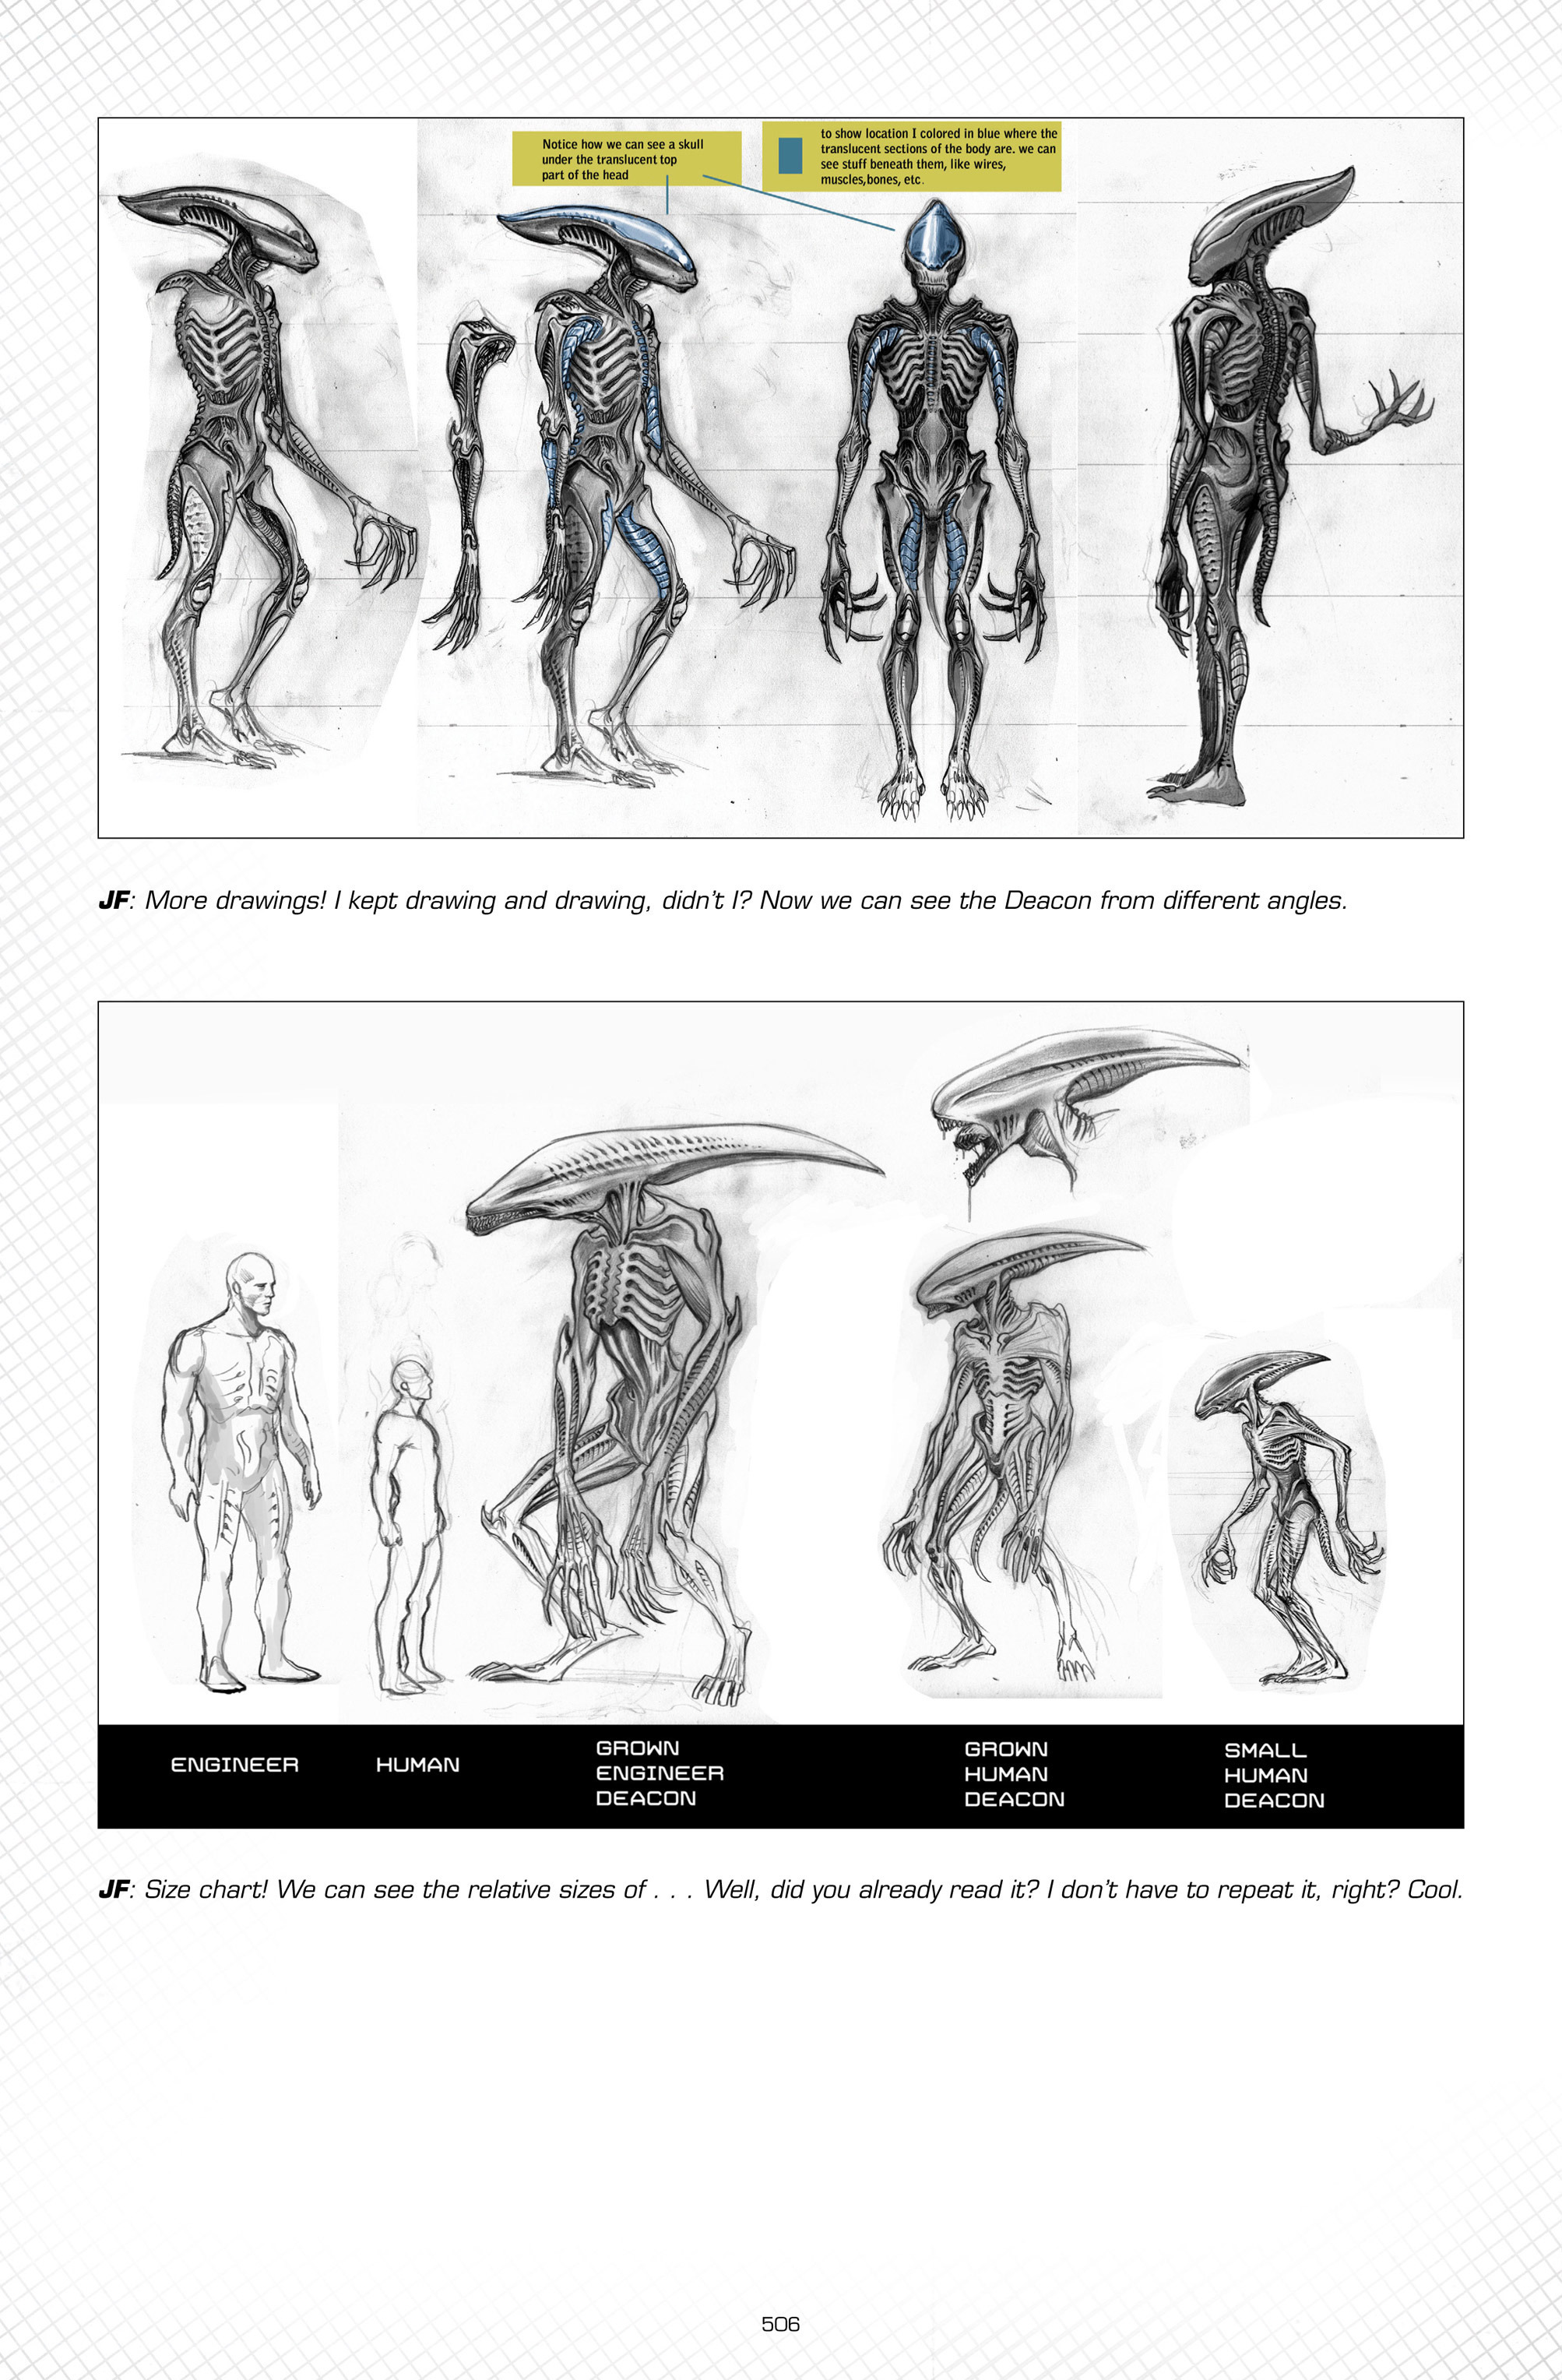 Unused Deacon concept designs from fire and stone comics